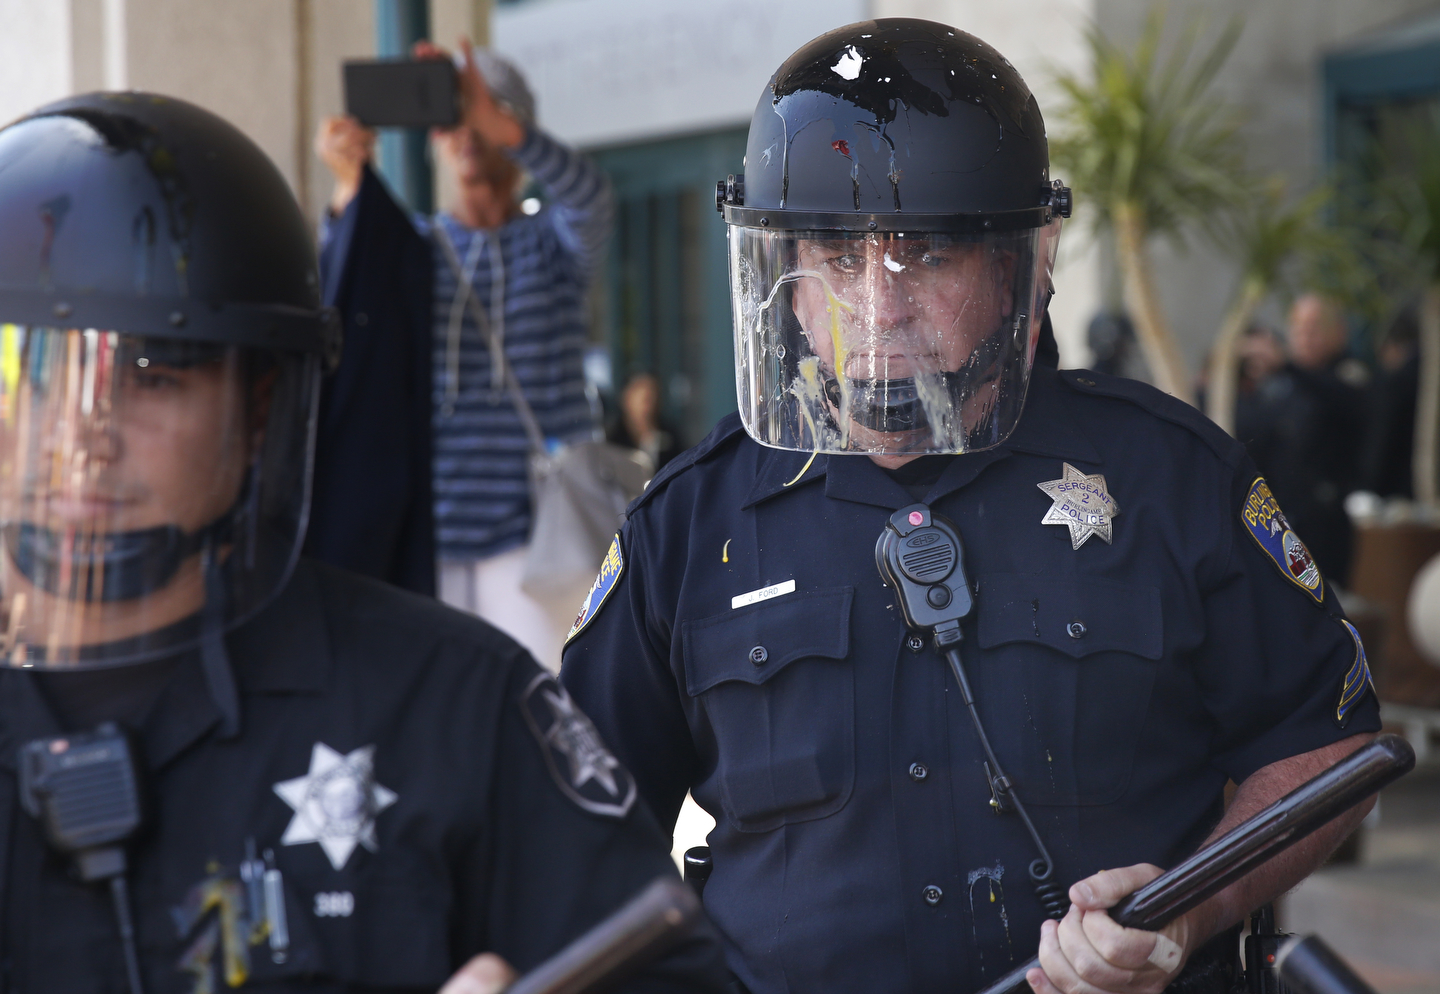 An egg that smashed onto a police officer's face shield runs as he stands between protesters and the front of the Hyatt Regency during the first day of the California Republican Party Convention which featured speeches from Presidential candidates Donald Trump and John Kasich among others April 29, 2016 in Burlingame, Calif.